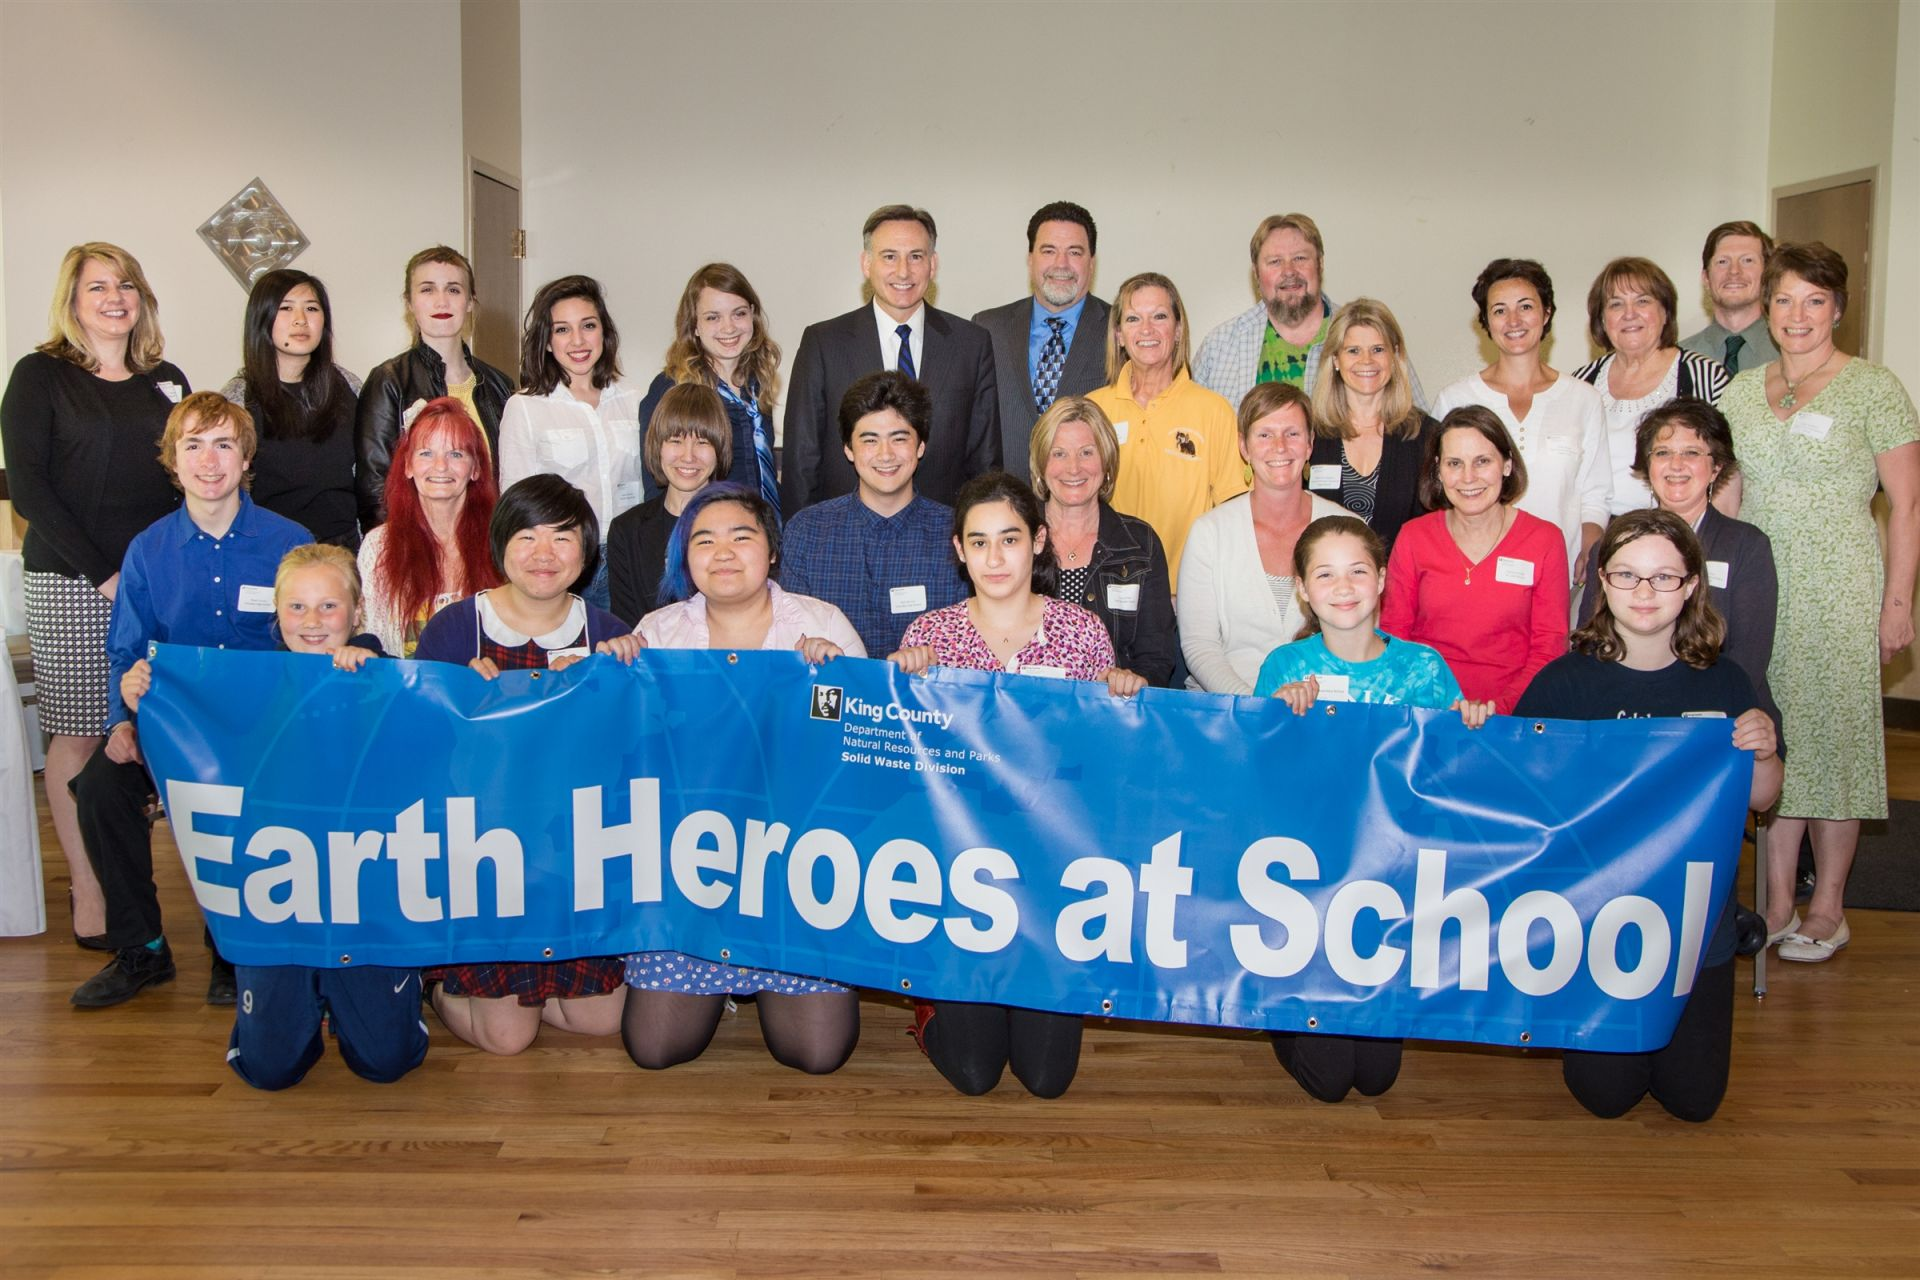 In April 2015, FASPS received the Earth Hero award, rewarding the school and its entire community for its commitment to environmental protection.